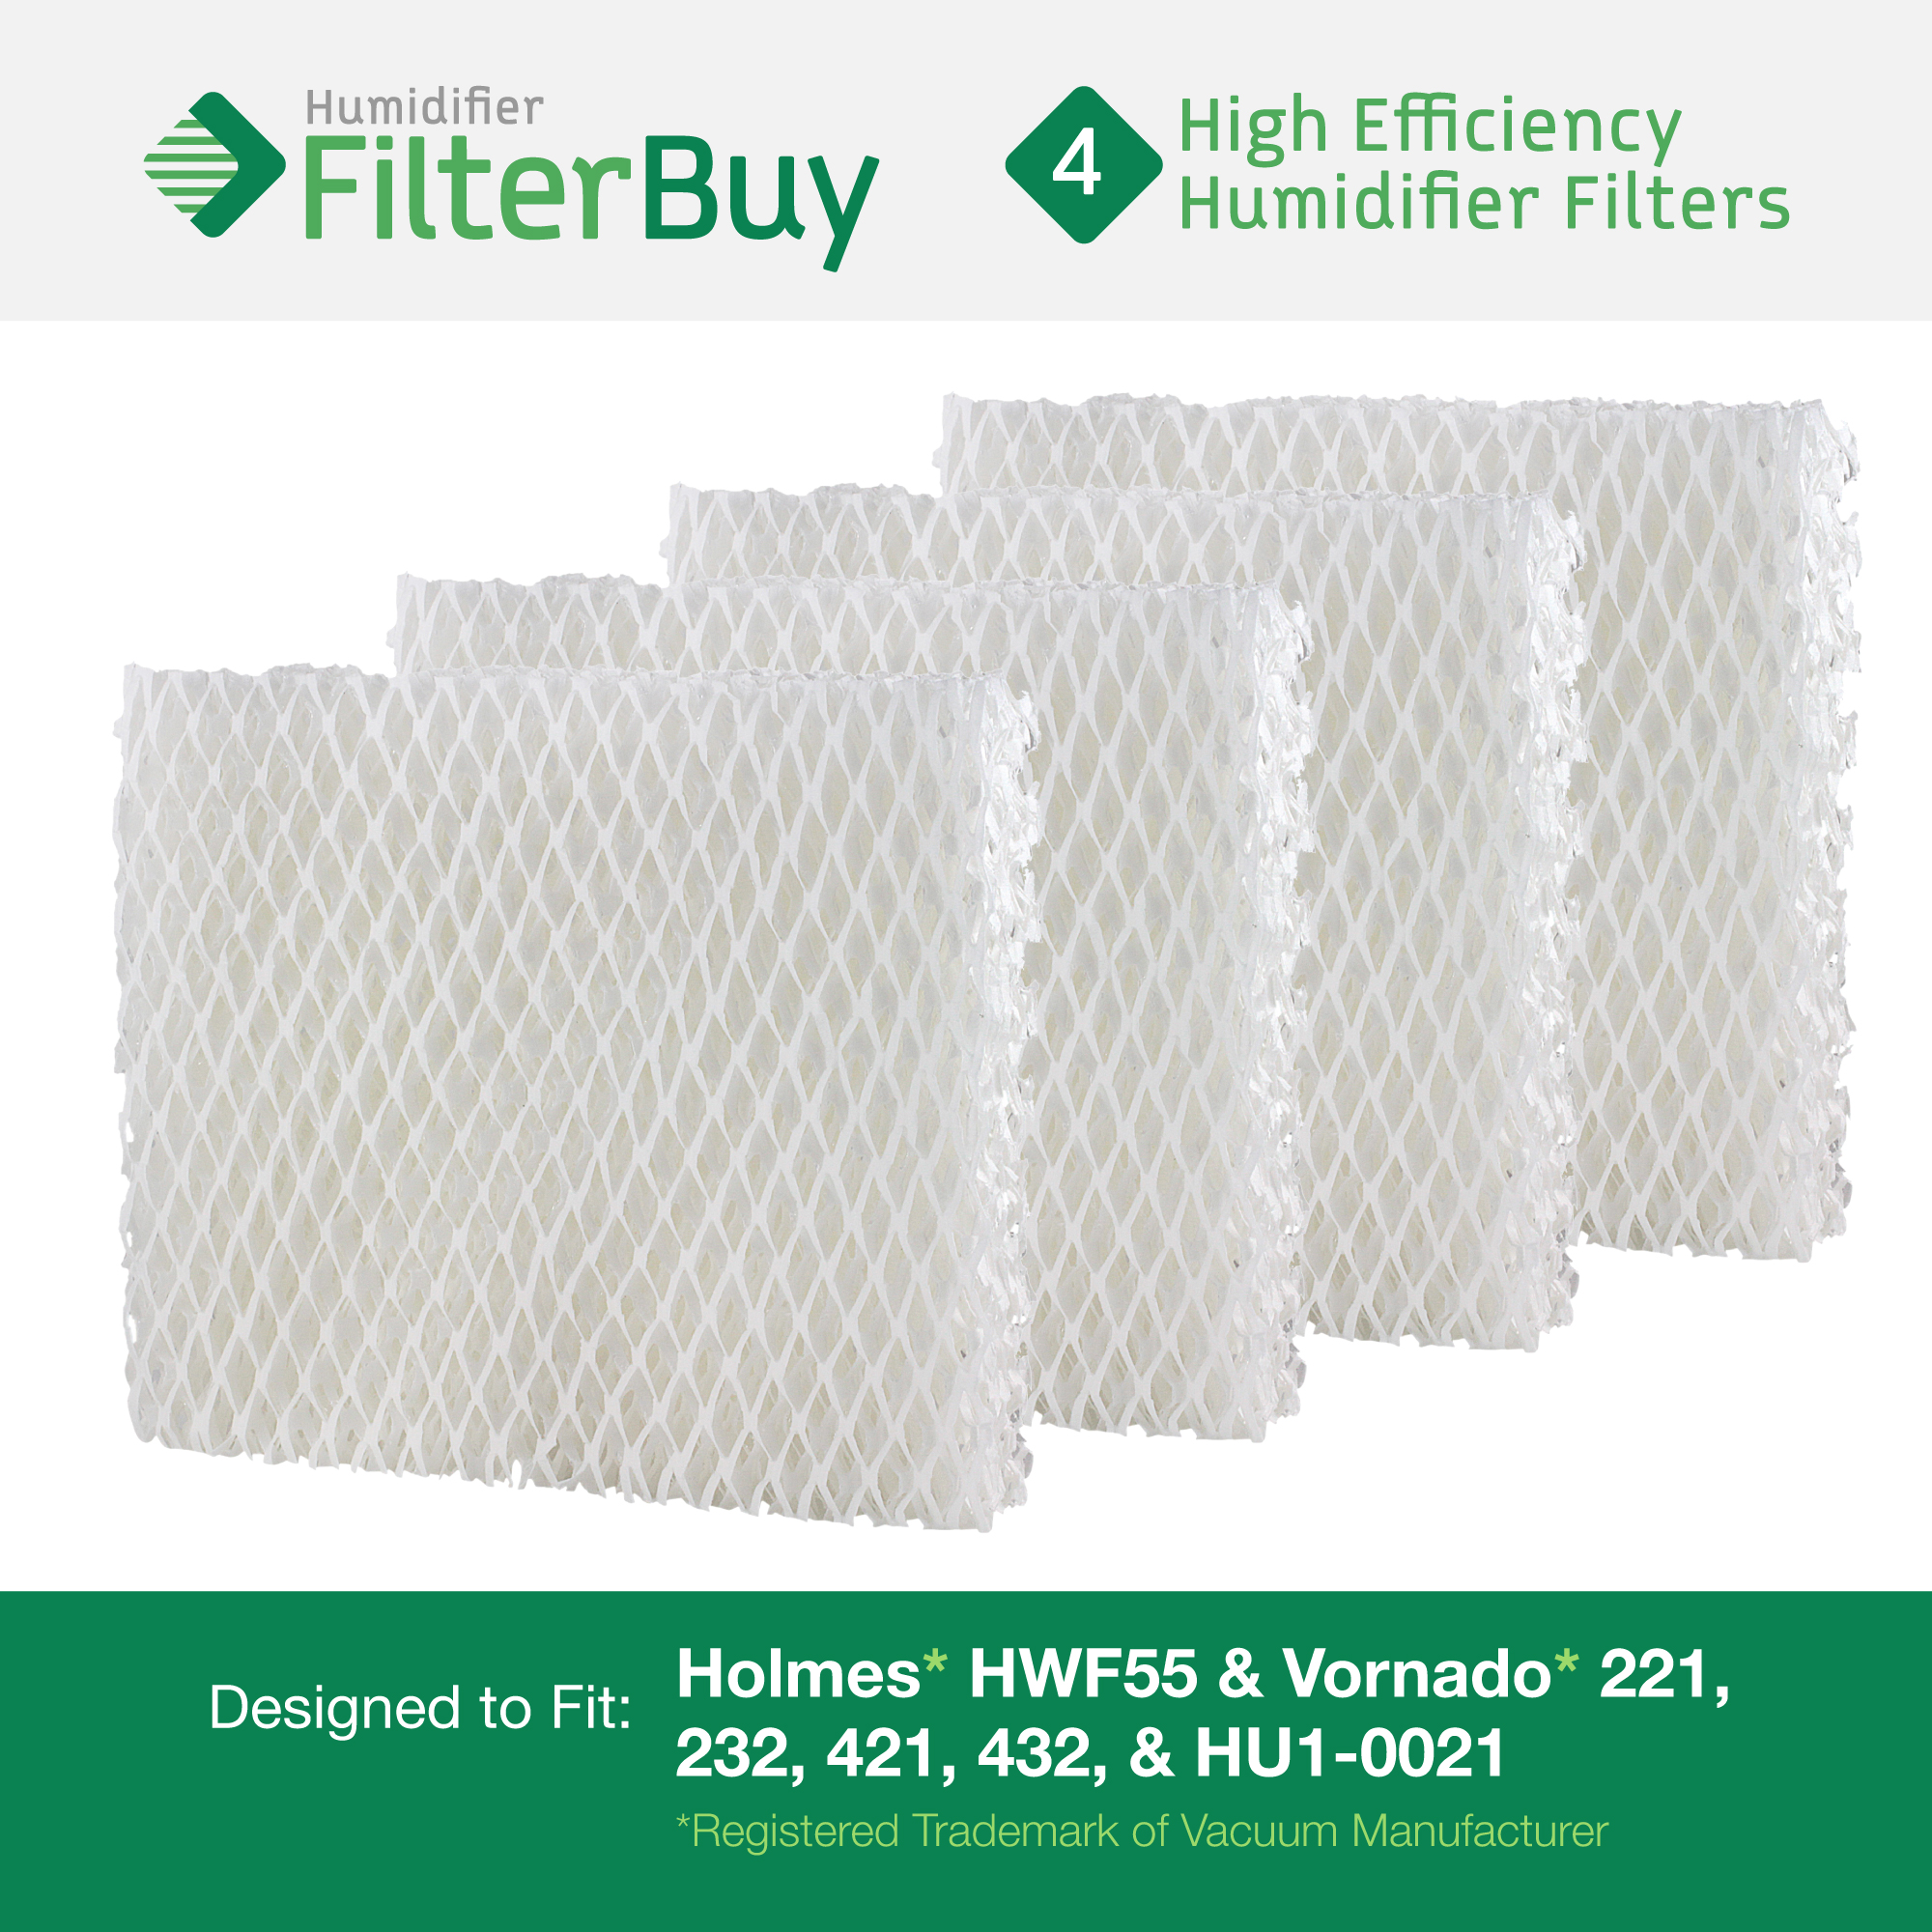 4 - Holmes HWF55, Vornado 221, 232, 421, 432, & HU1-0021 Humidifier Wick Replacement Filters. Designed and engineered by FilterBuy in the USA.